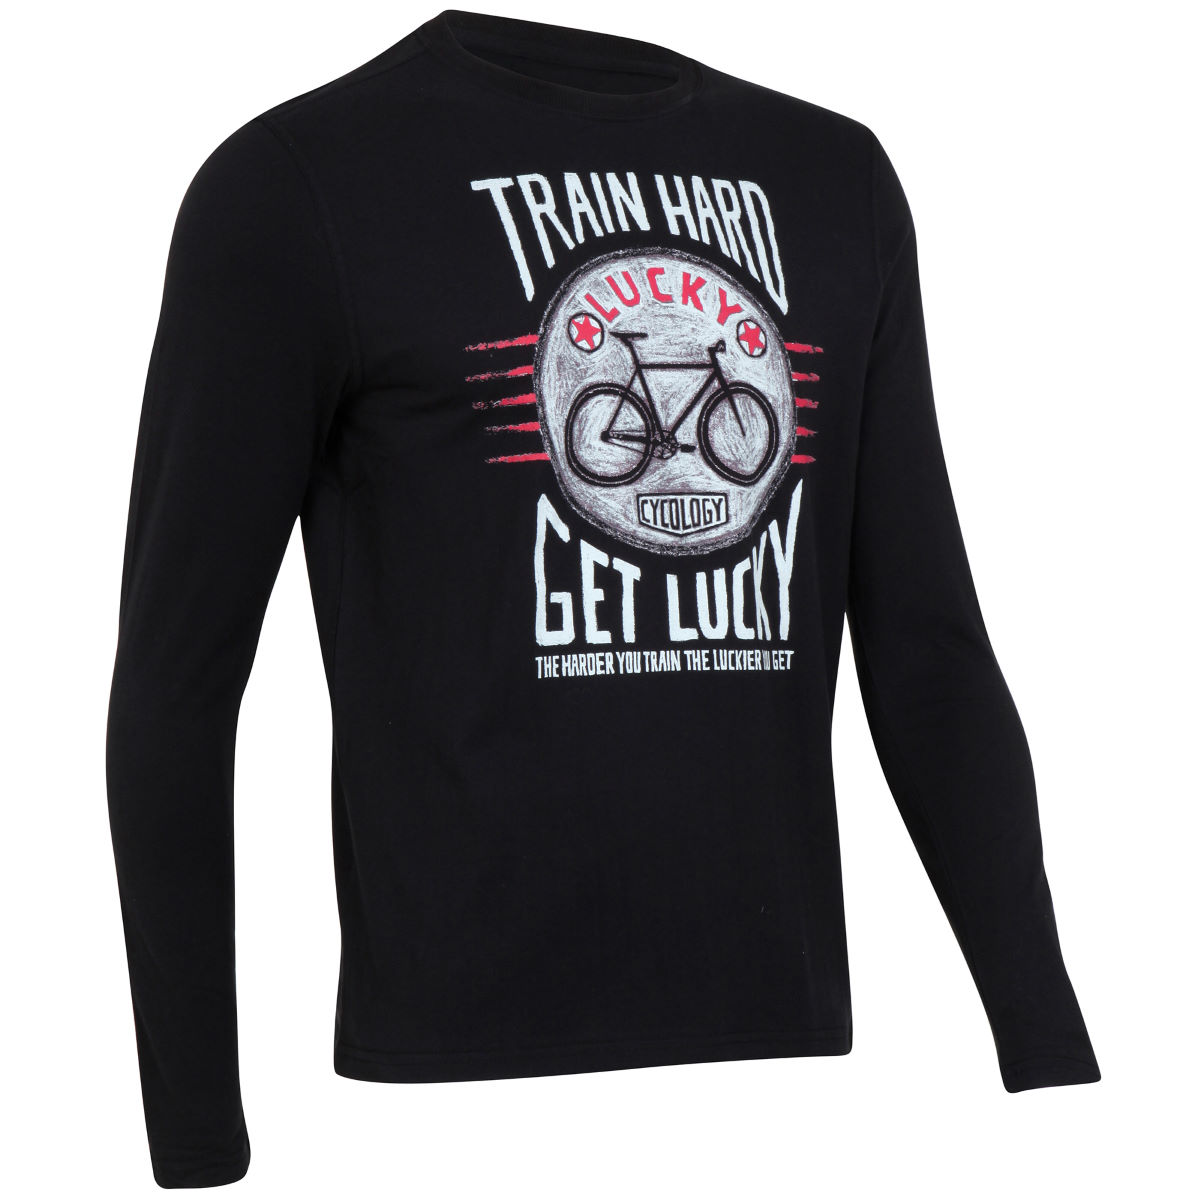 Maillot Cycology Train Hard Get Lucky (manches longues) - XXL Noir